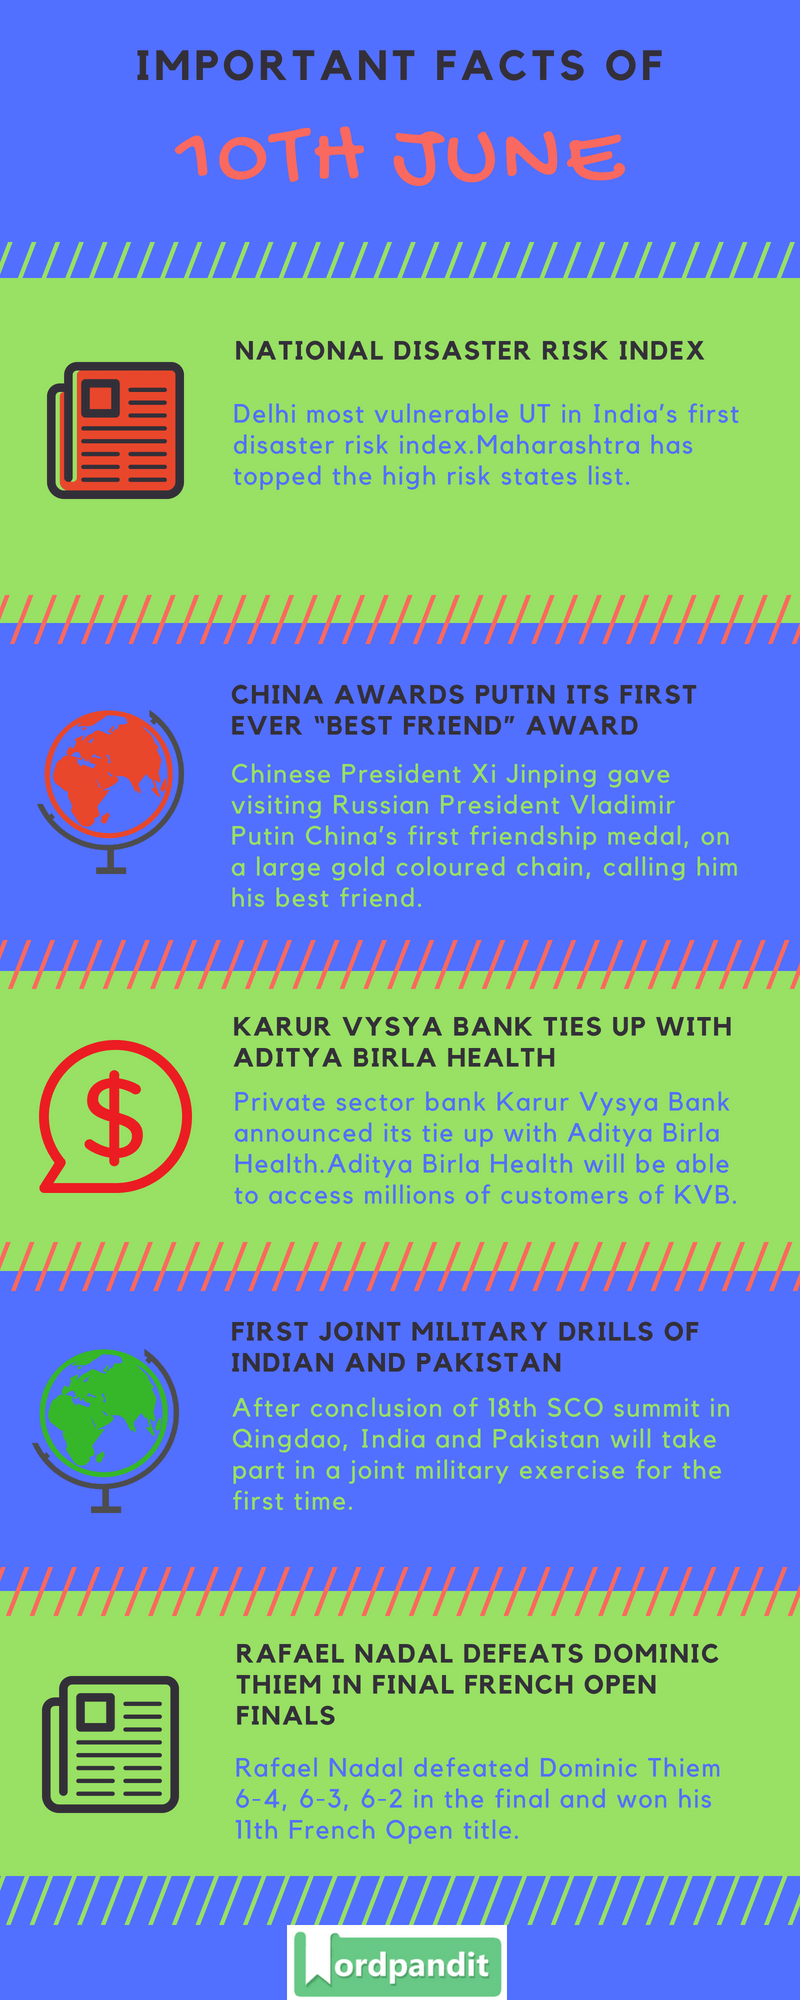 Daily Current Affairs 10 June 2018 Current Affairs Quiz June 10 2018 Current Affairs Infographic